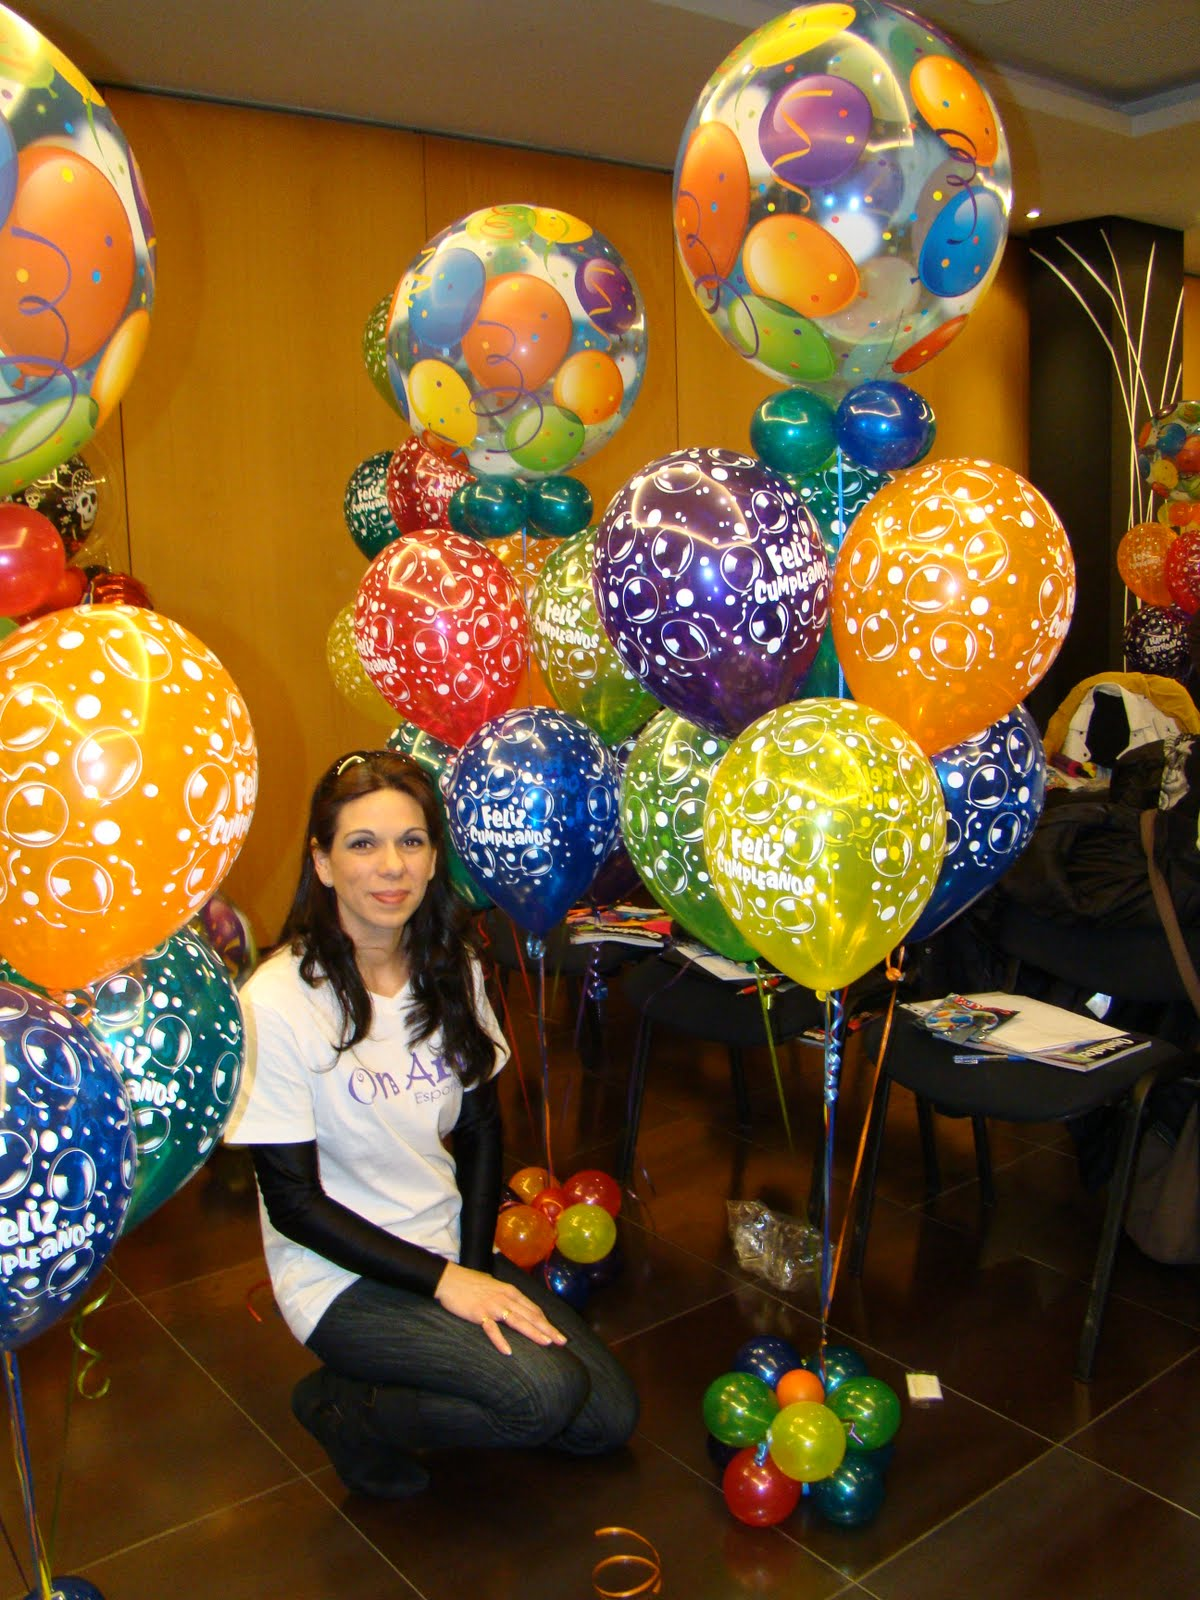 Curso onart de decoraci n con globos qualatex 2010 - Globos de decoracion ...